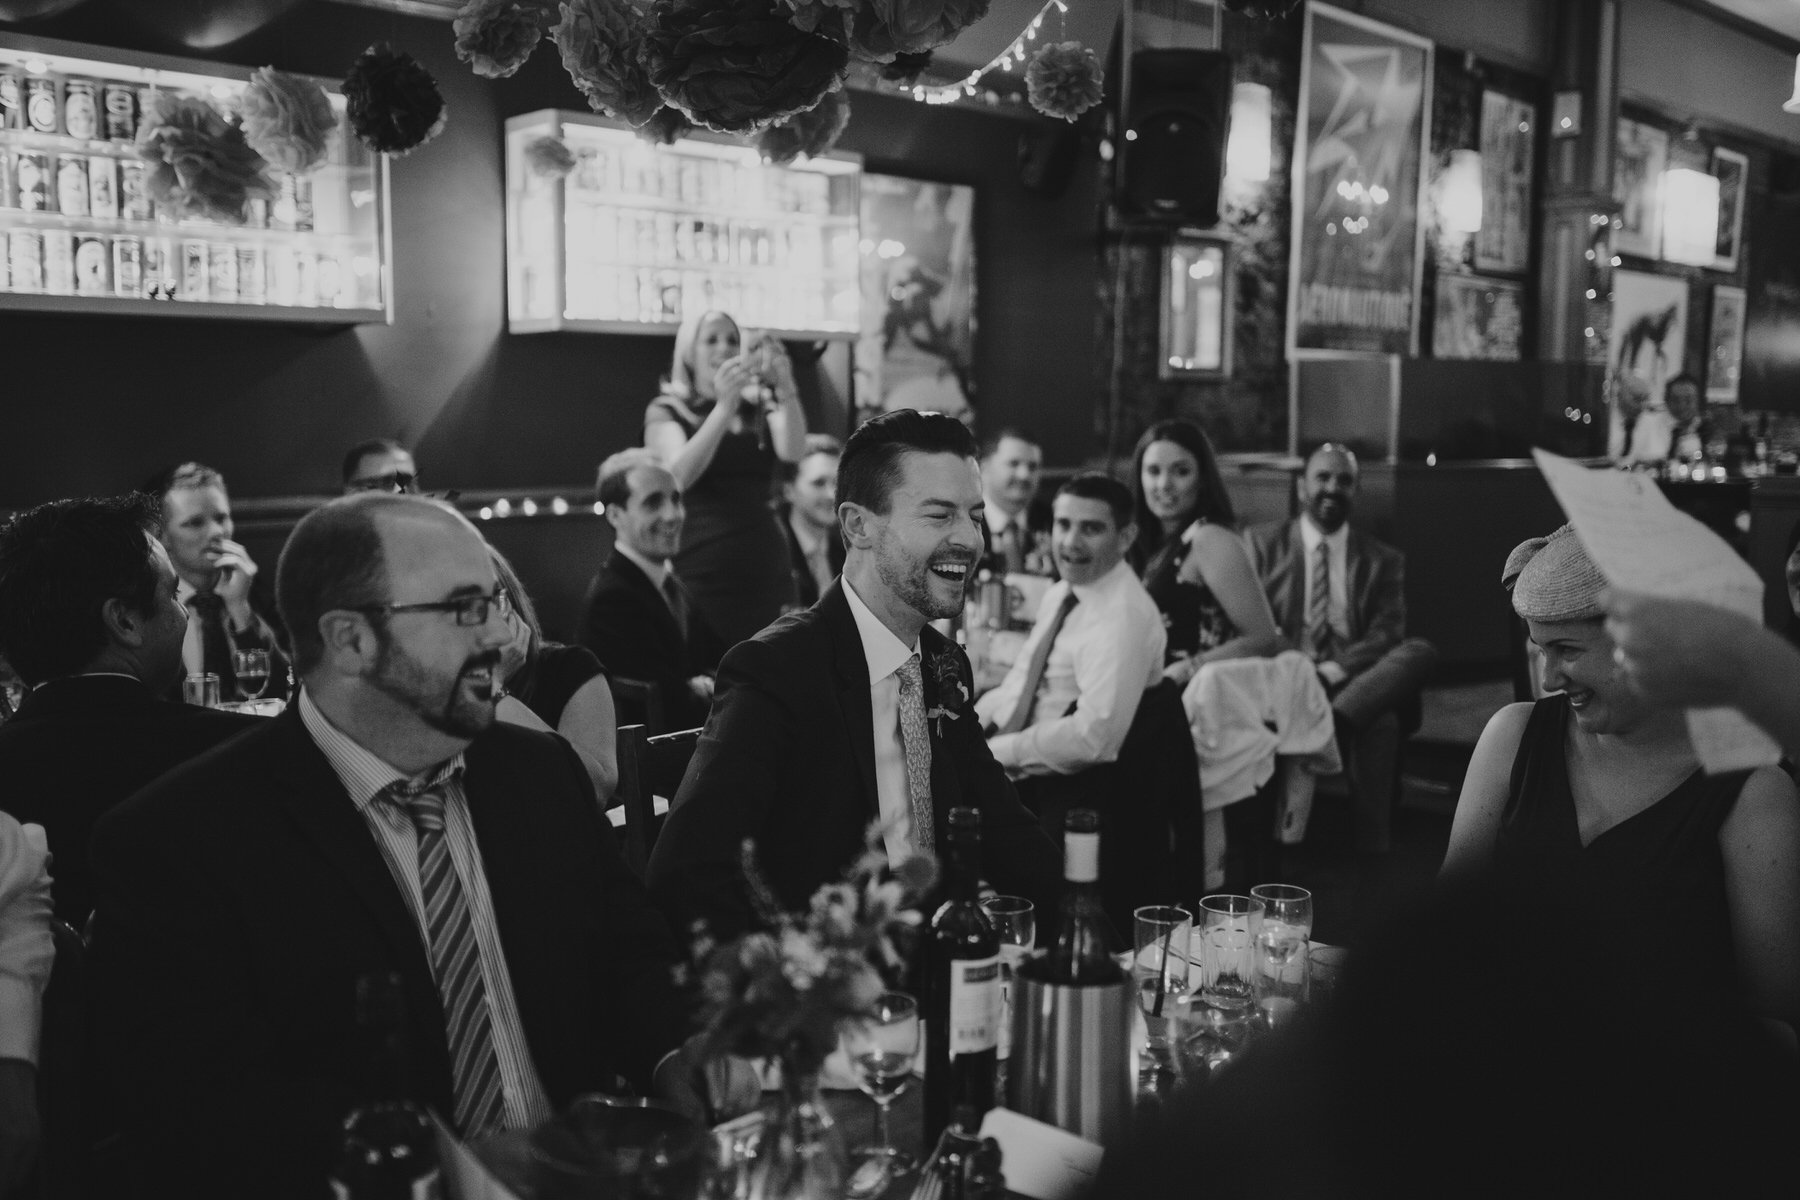 293-Londesborough-Pub-wedding-groom-laughing.jpg